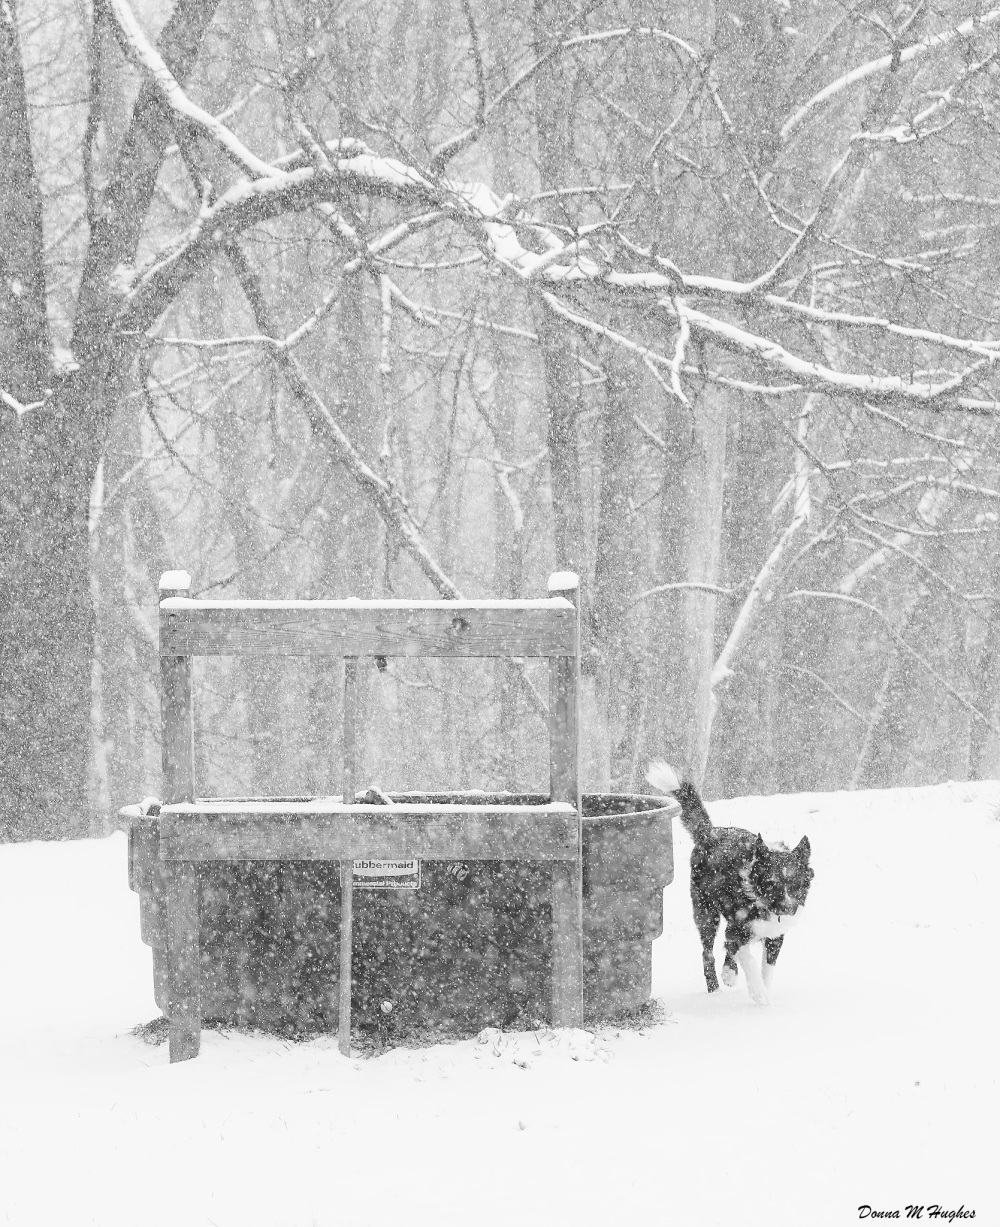 Henry by the Watering Trough in a Snow Storm